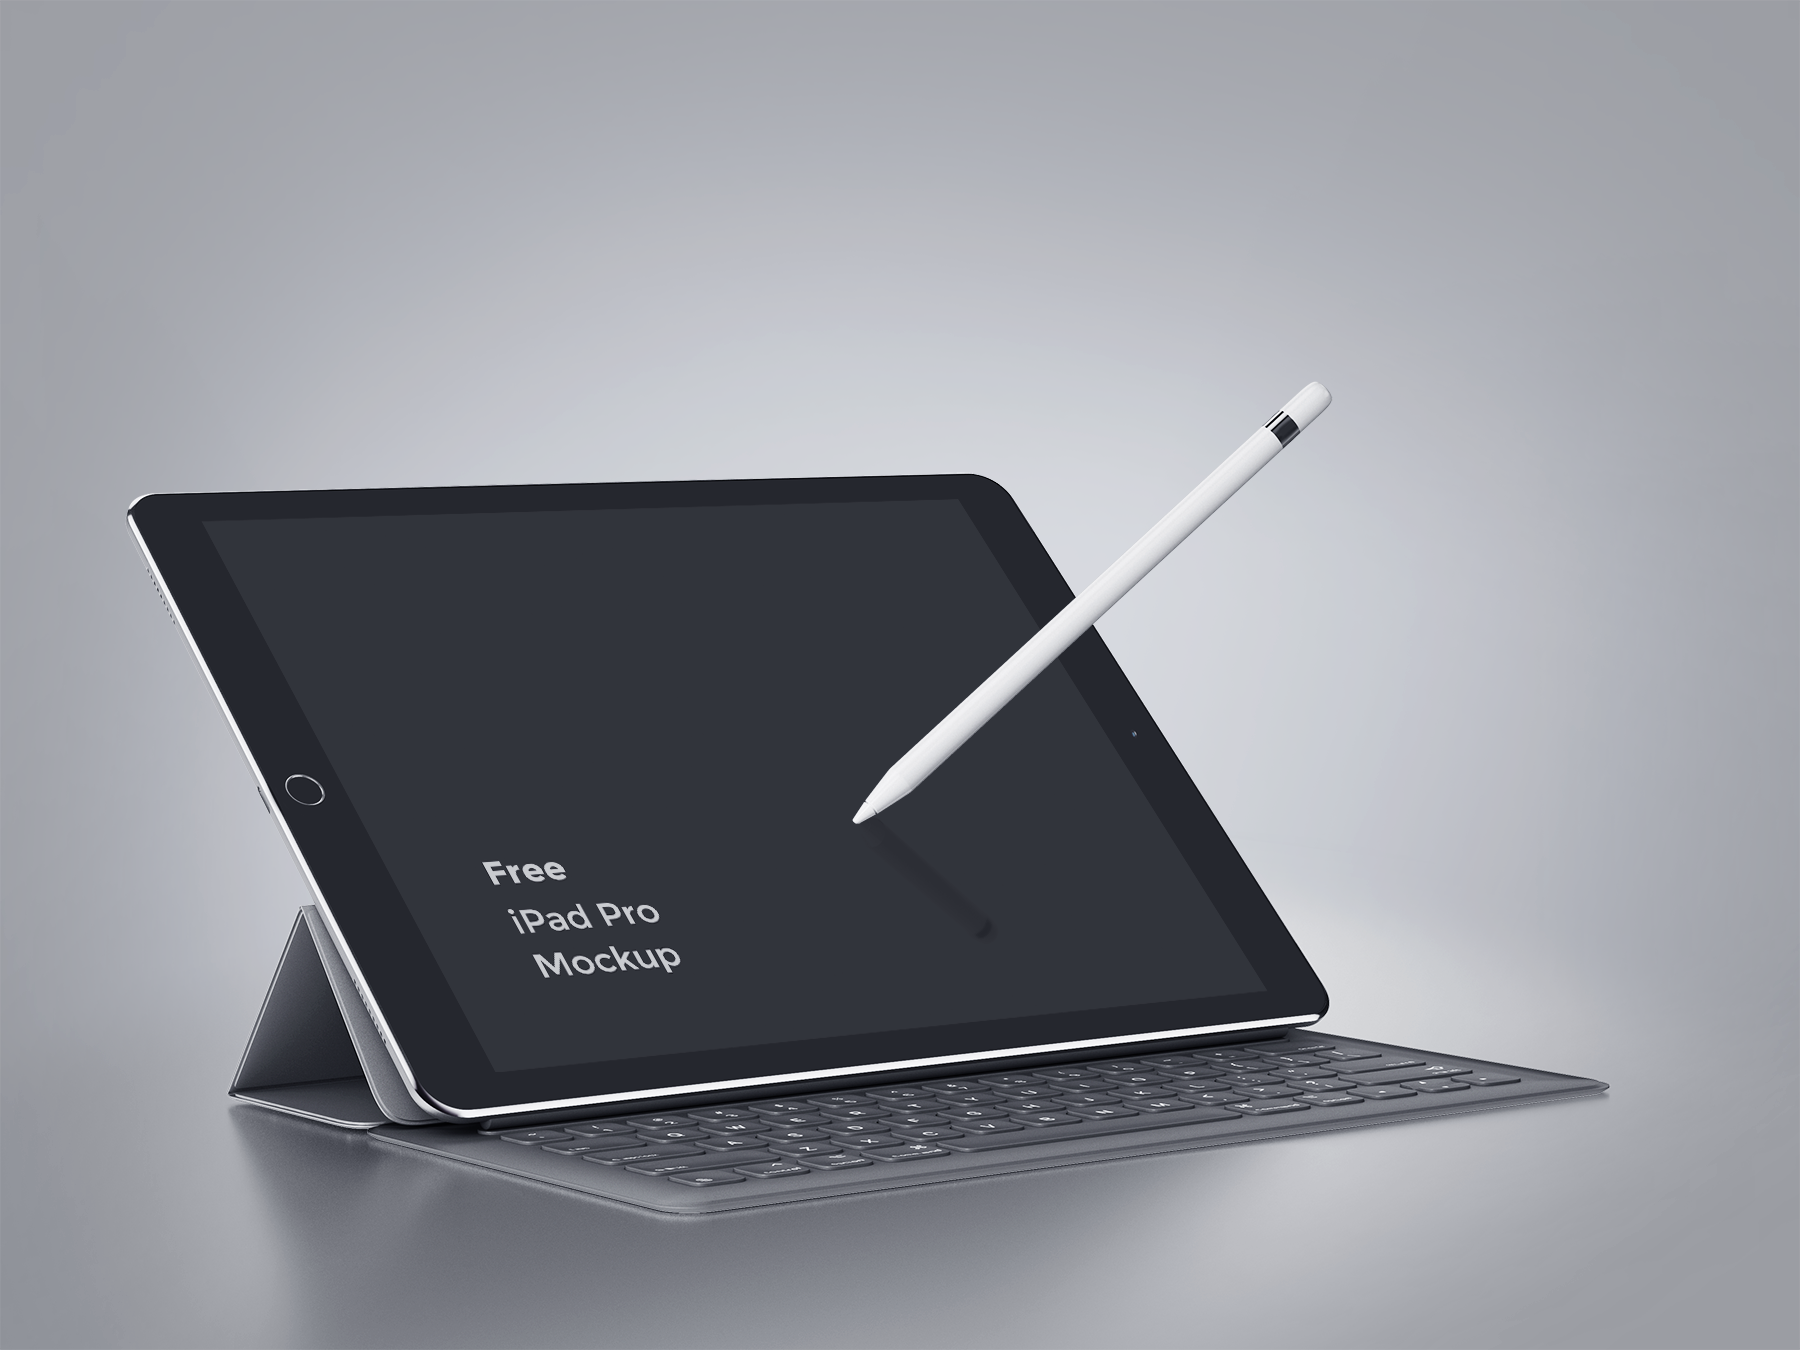 Free iPad Pro with Keyboard Mockup